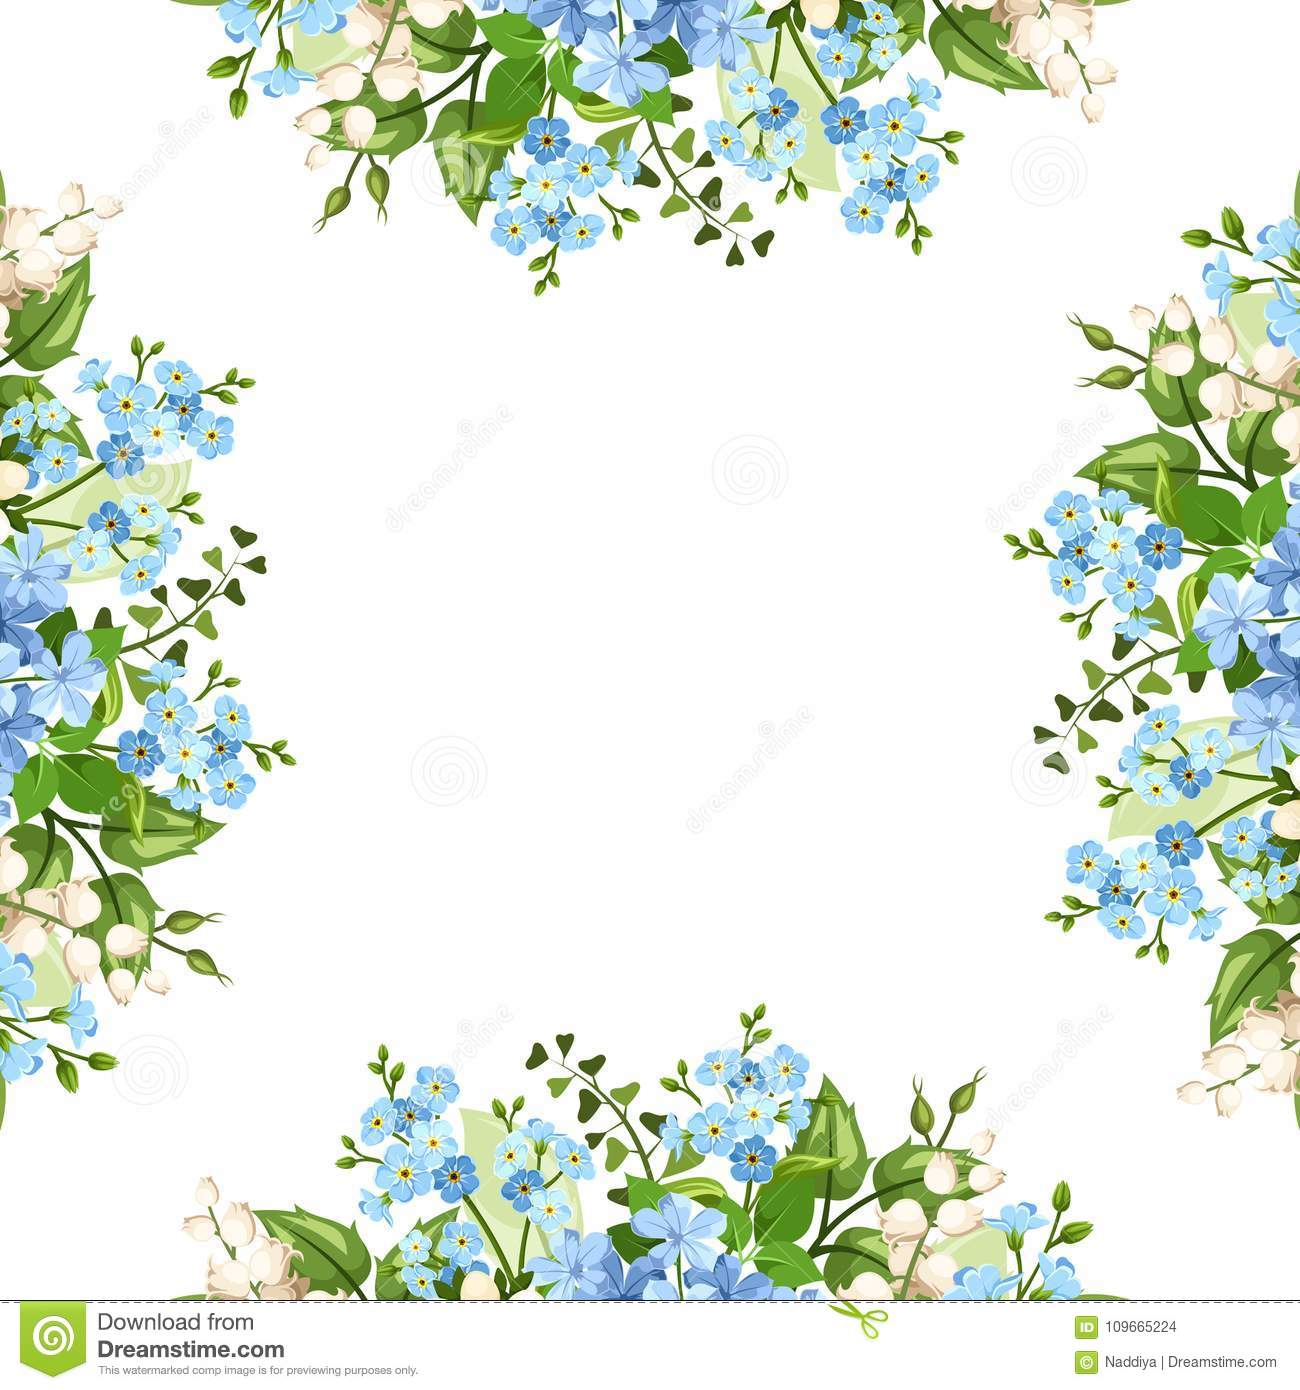 Background Frame With Blue And White Flowers Vector Illustration